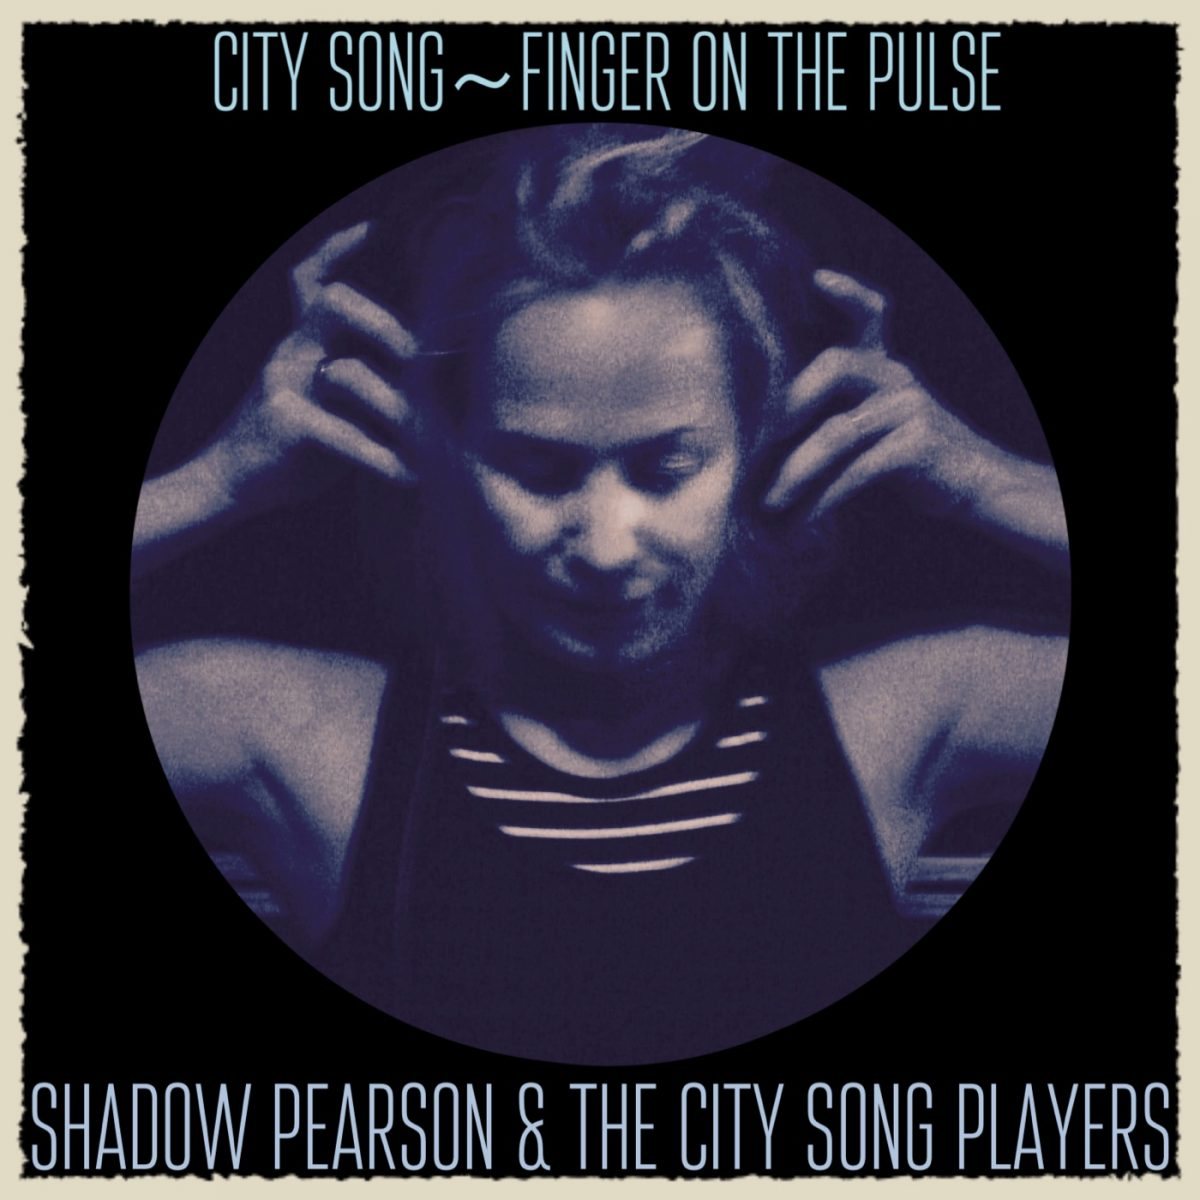 Shadow Pearson & The City Song Players – 'Finger On The Pulse,'